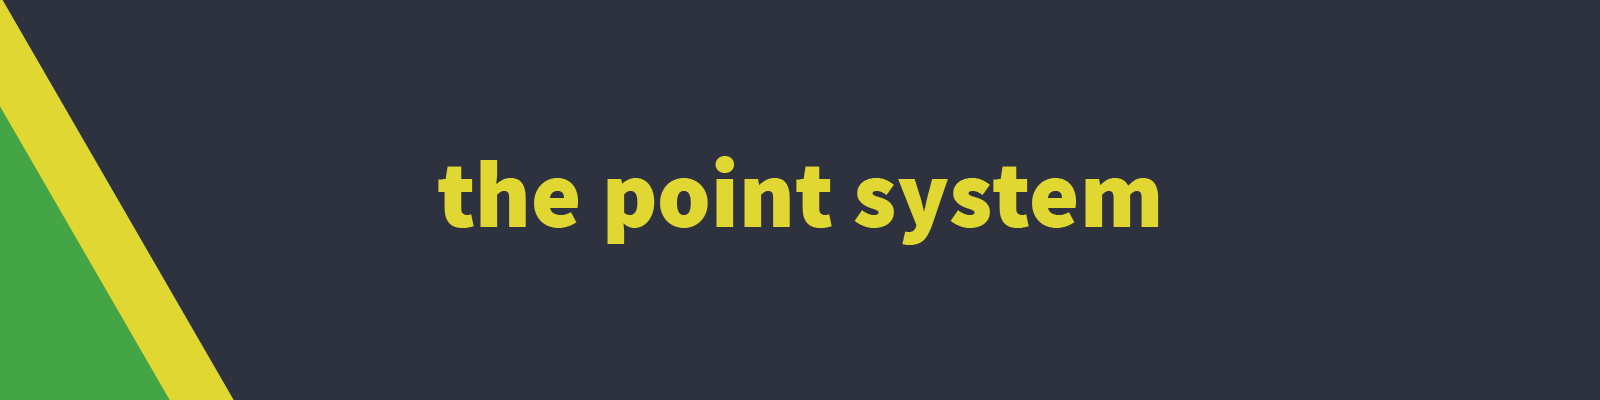 THE POINT SYSTEM. certifyD the design certification dialogue. Certifying Responsible Design (CRED) proposal. A Graduate thesis by Esteban Perez-Hemminger @ Pratt Institute.